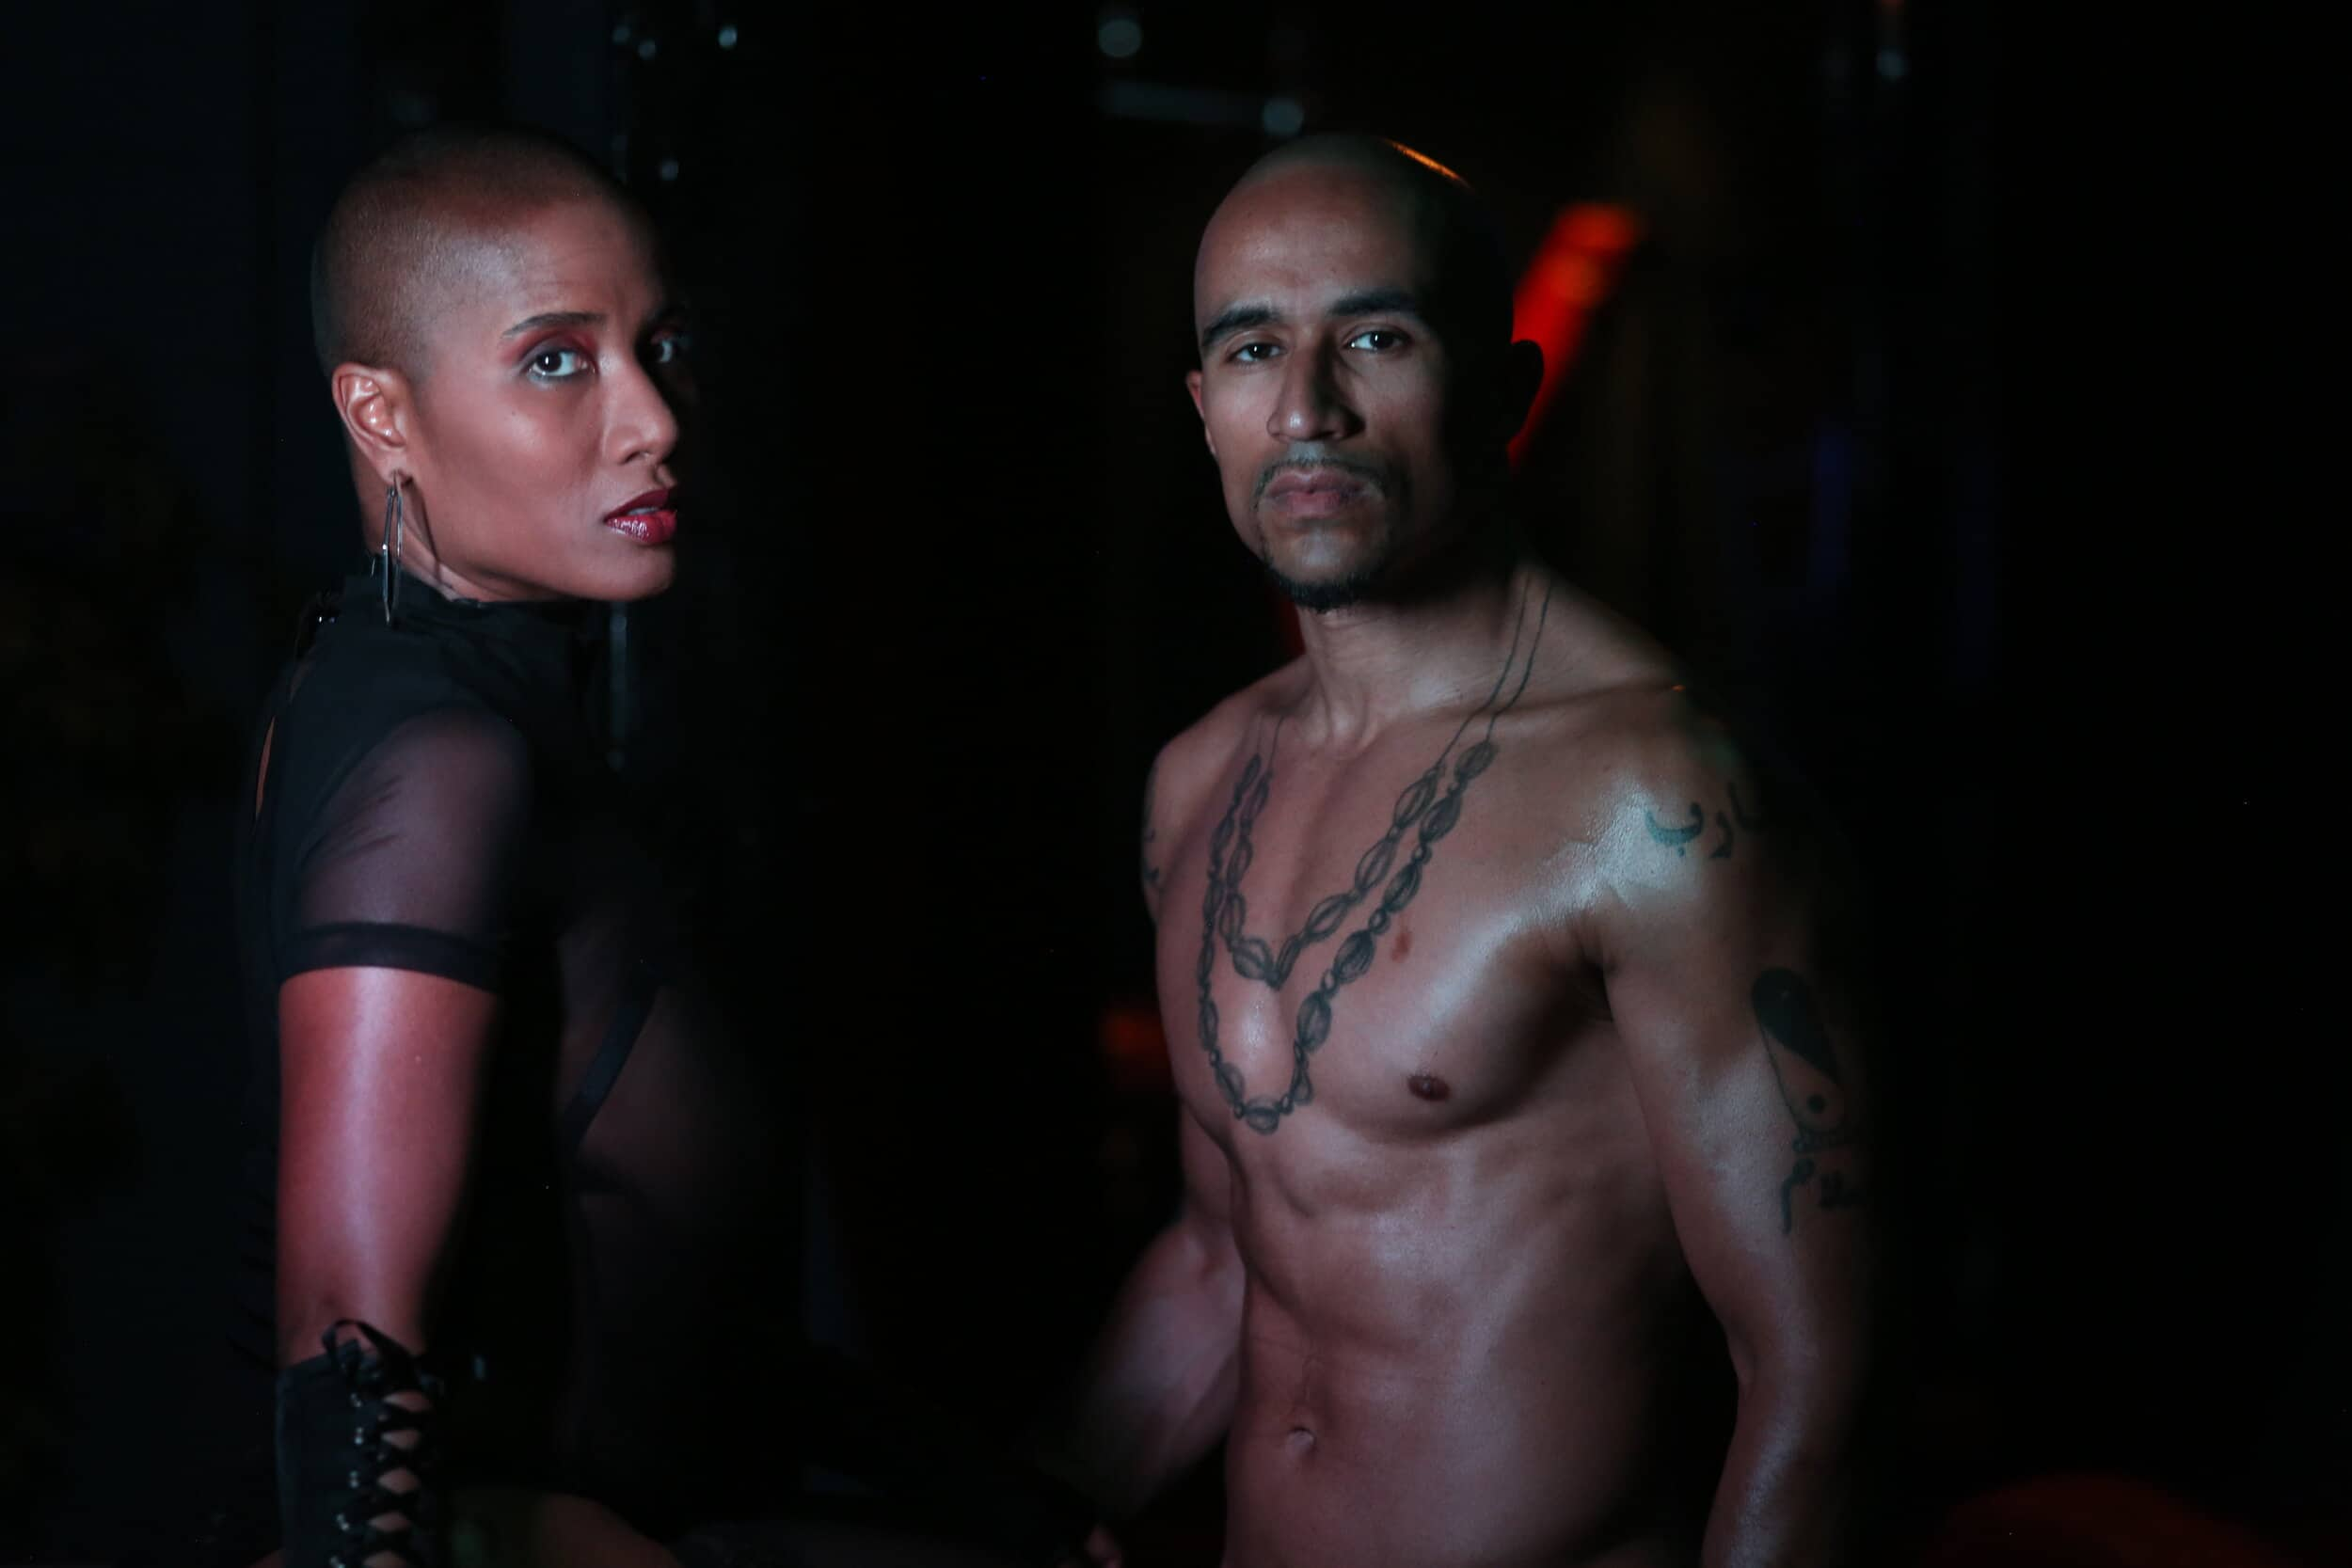 Porn and Politics with King Noire and Jet Setting Jasmine: Sex Work in the Time of Corona